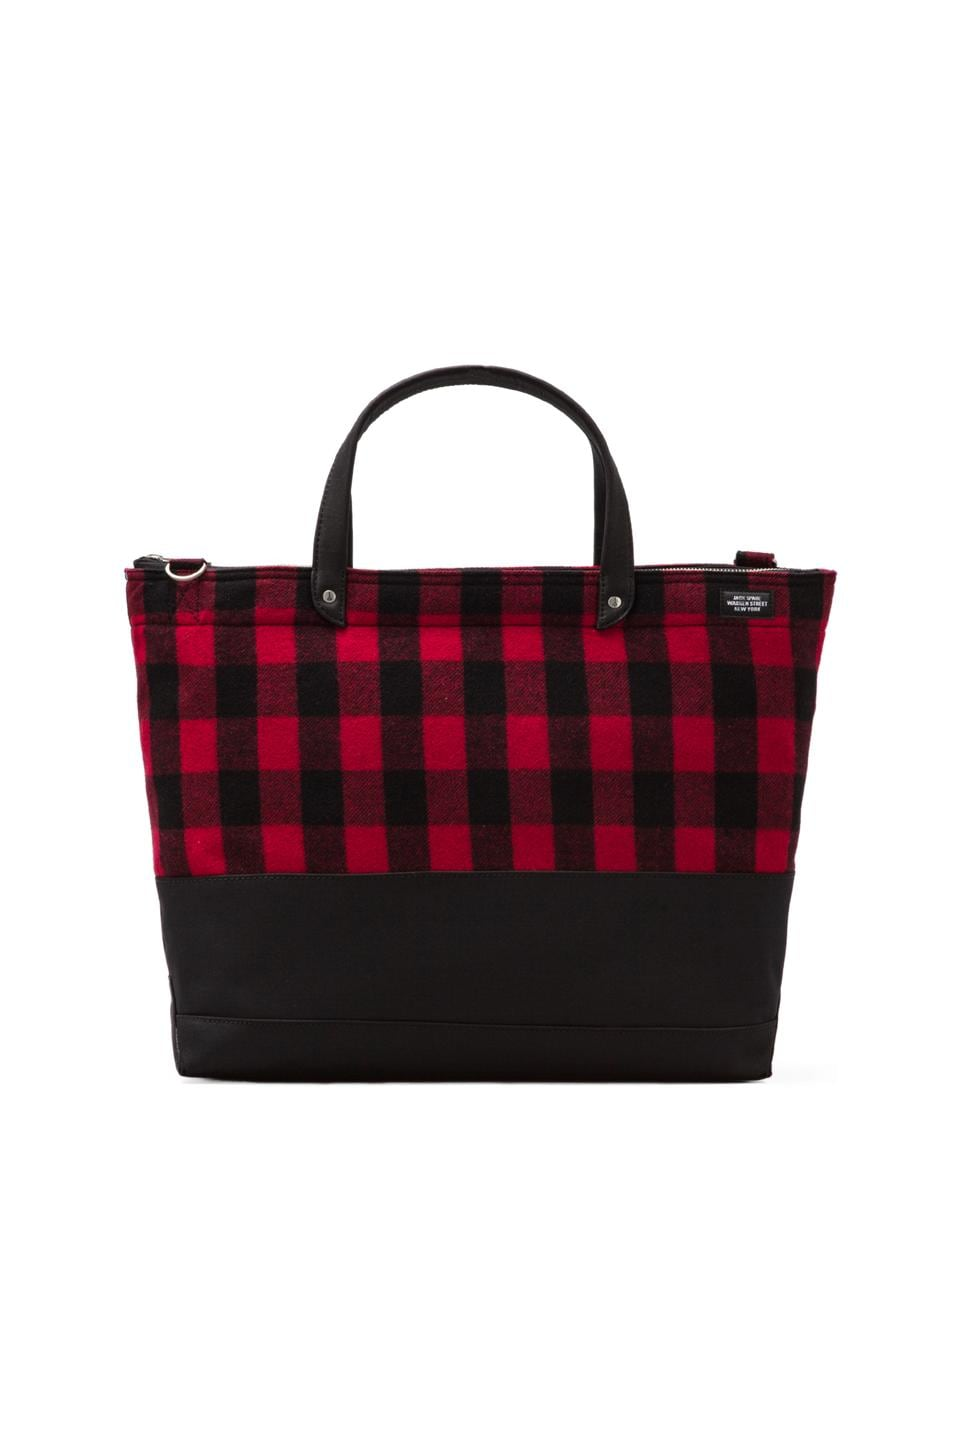 Jack Spade Buffalo Check Zip Coal Bag in Black/Red/Black